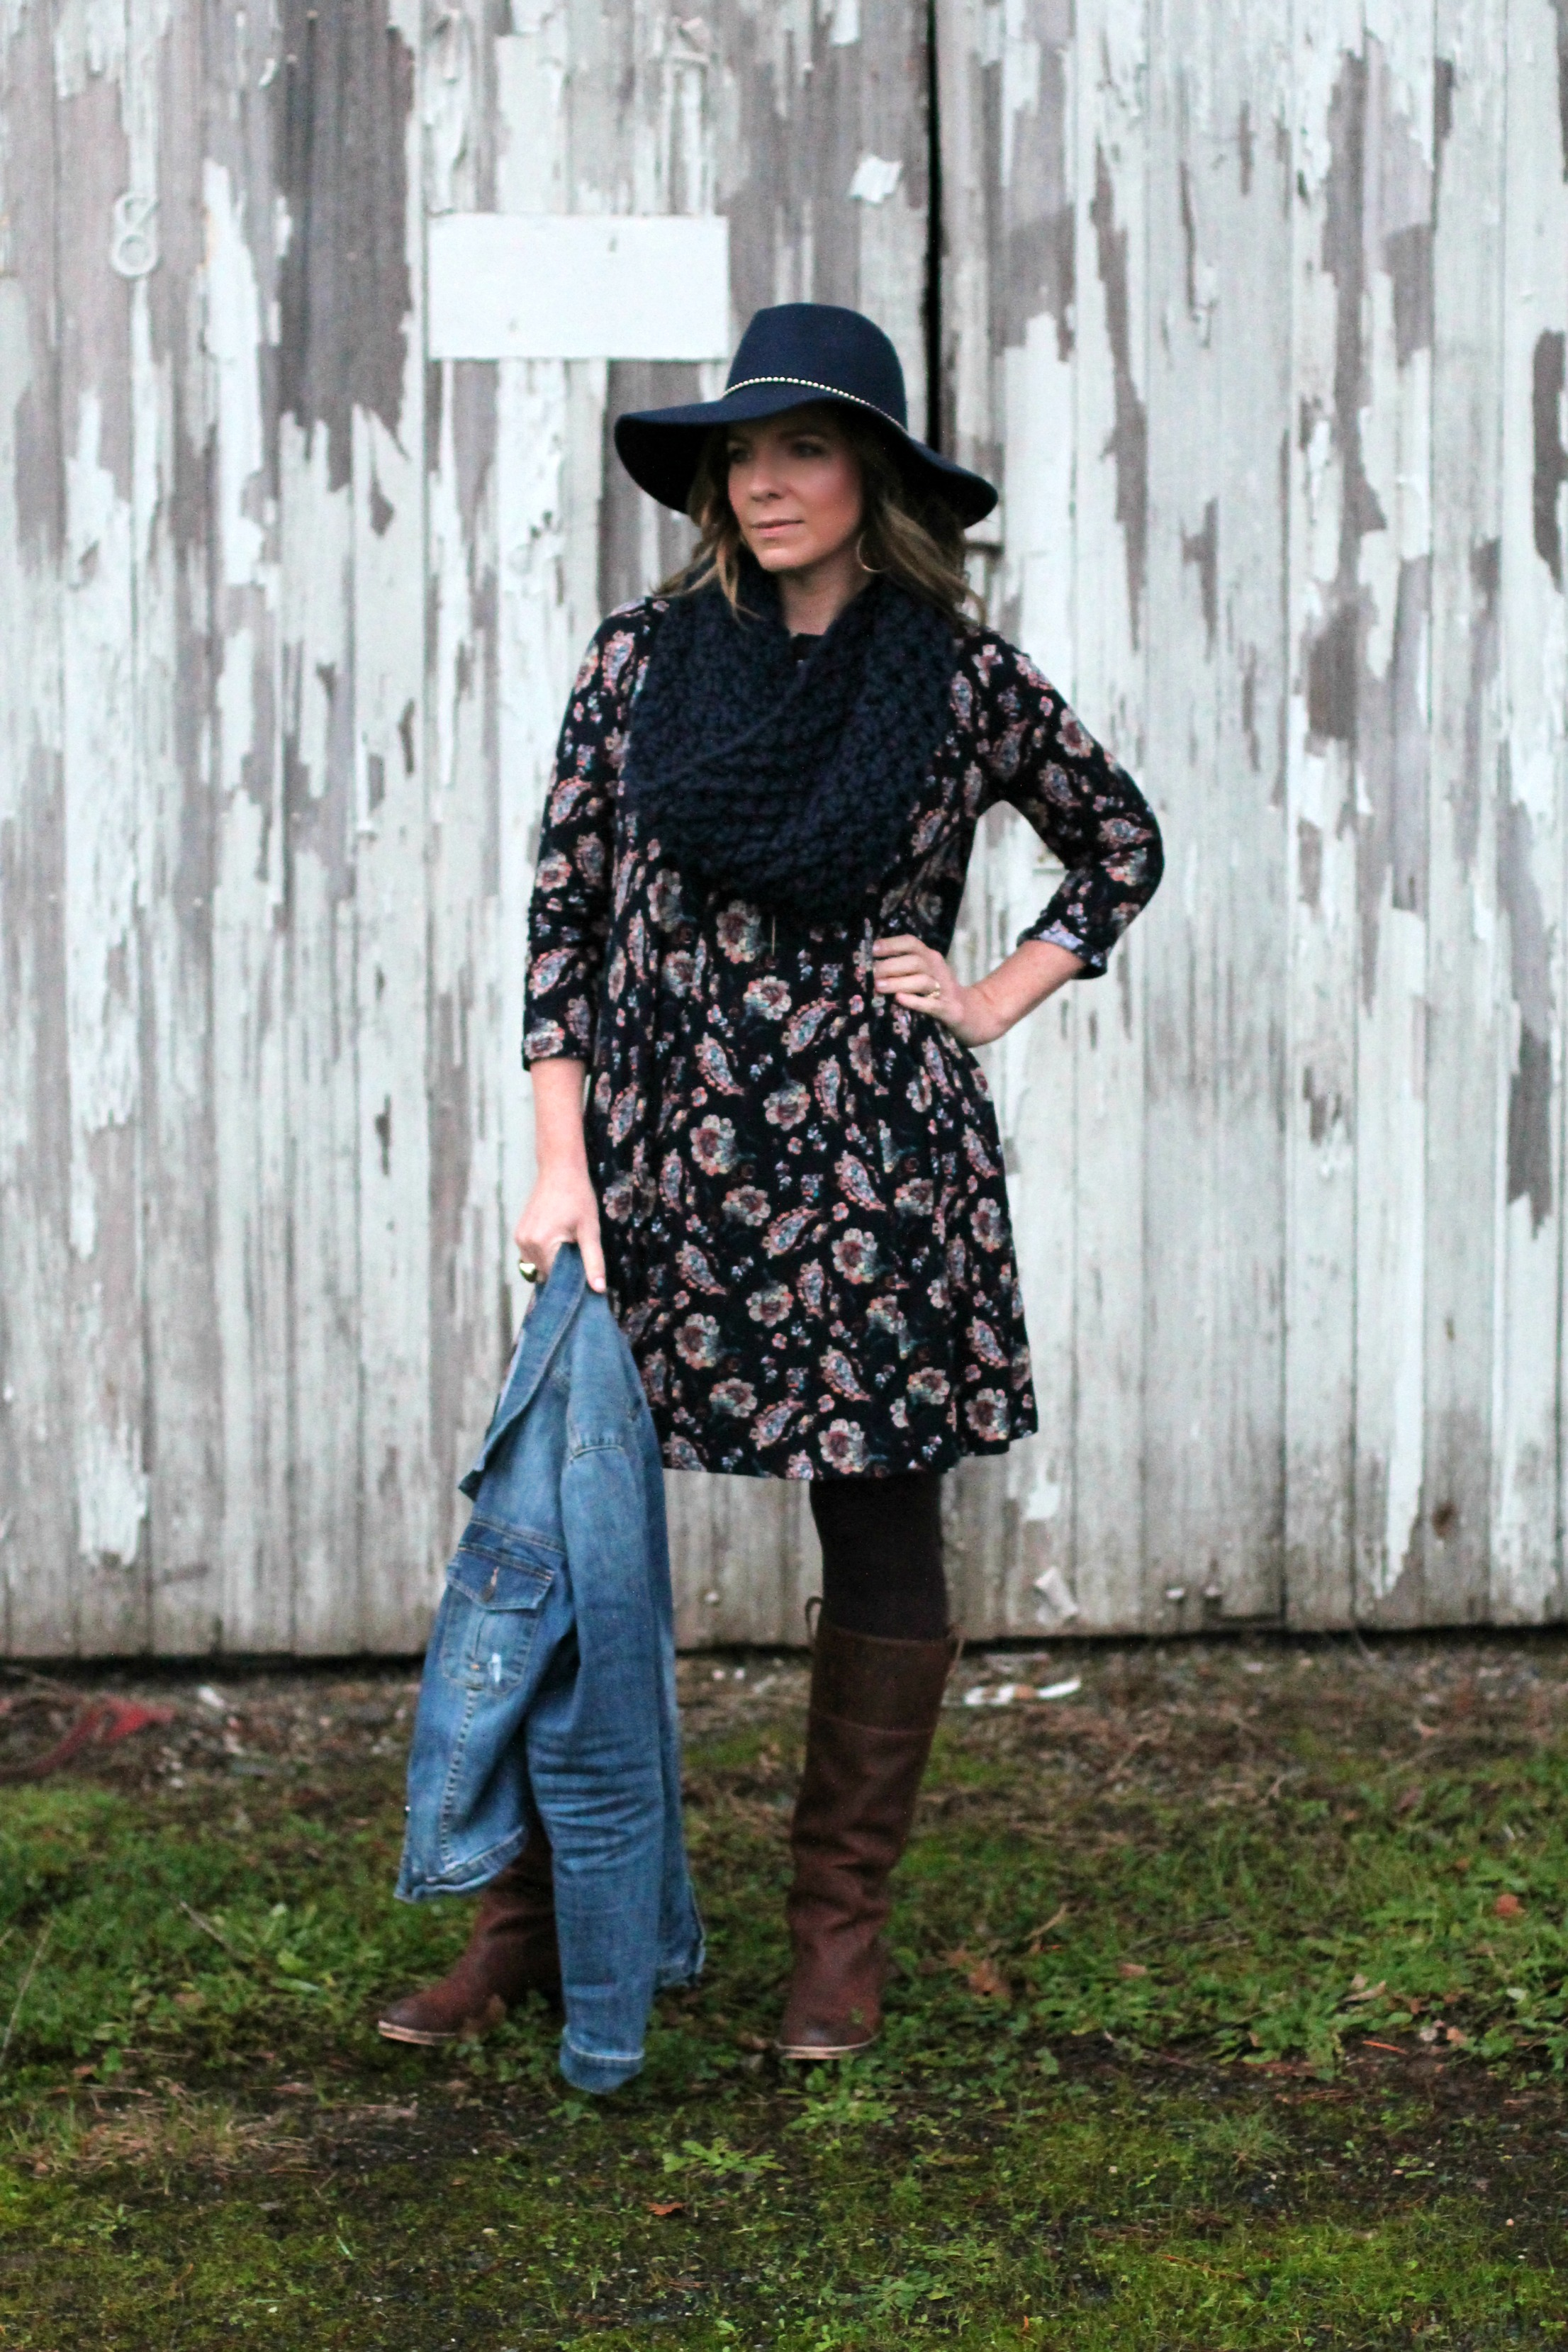 Boho Chic Winter Look